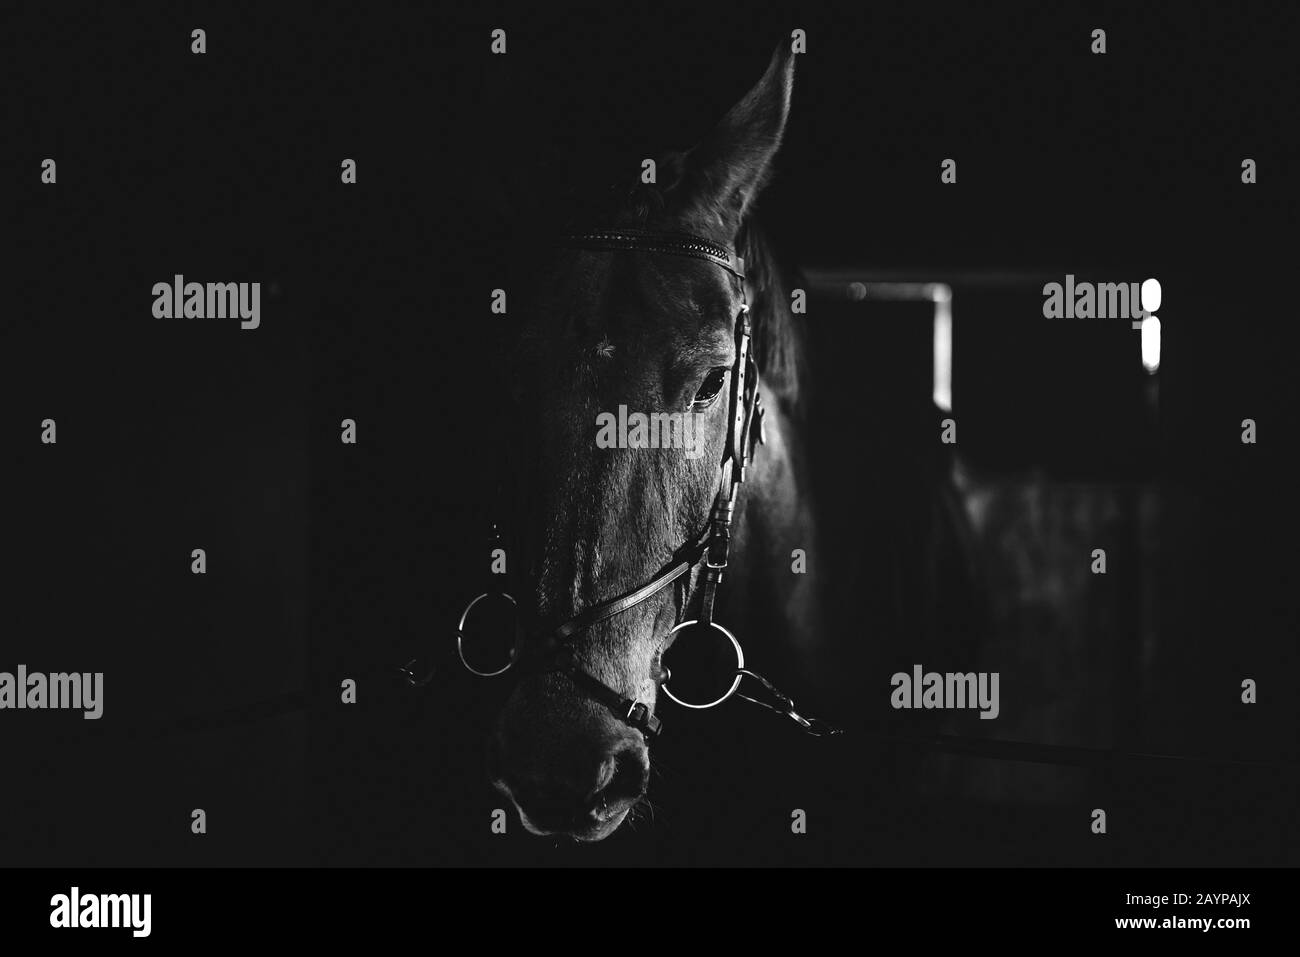 Black Horse Black Wild Horse In Stable Portrait Of A Horse Black And White Stock Photo Alamy